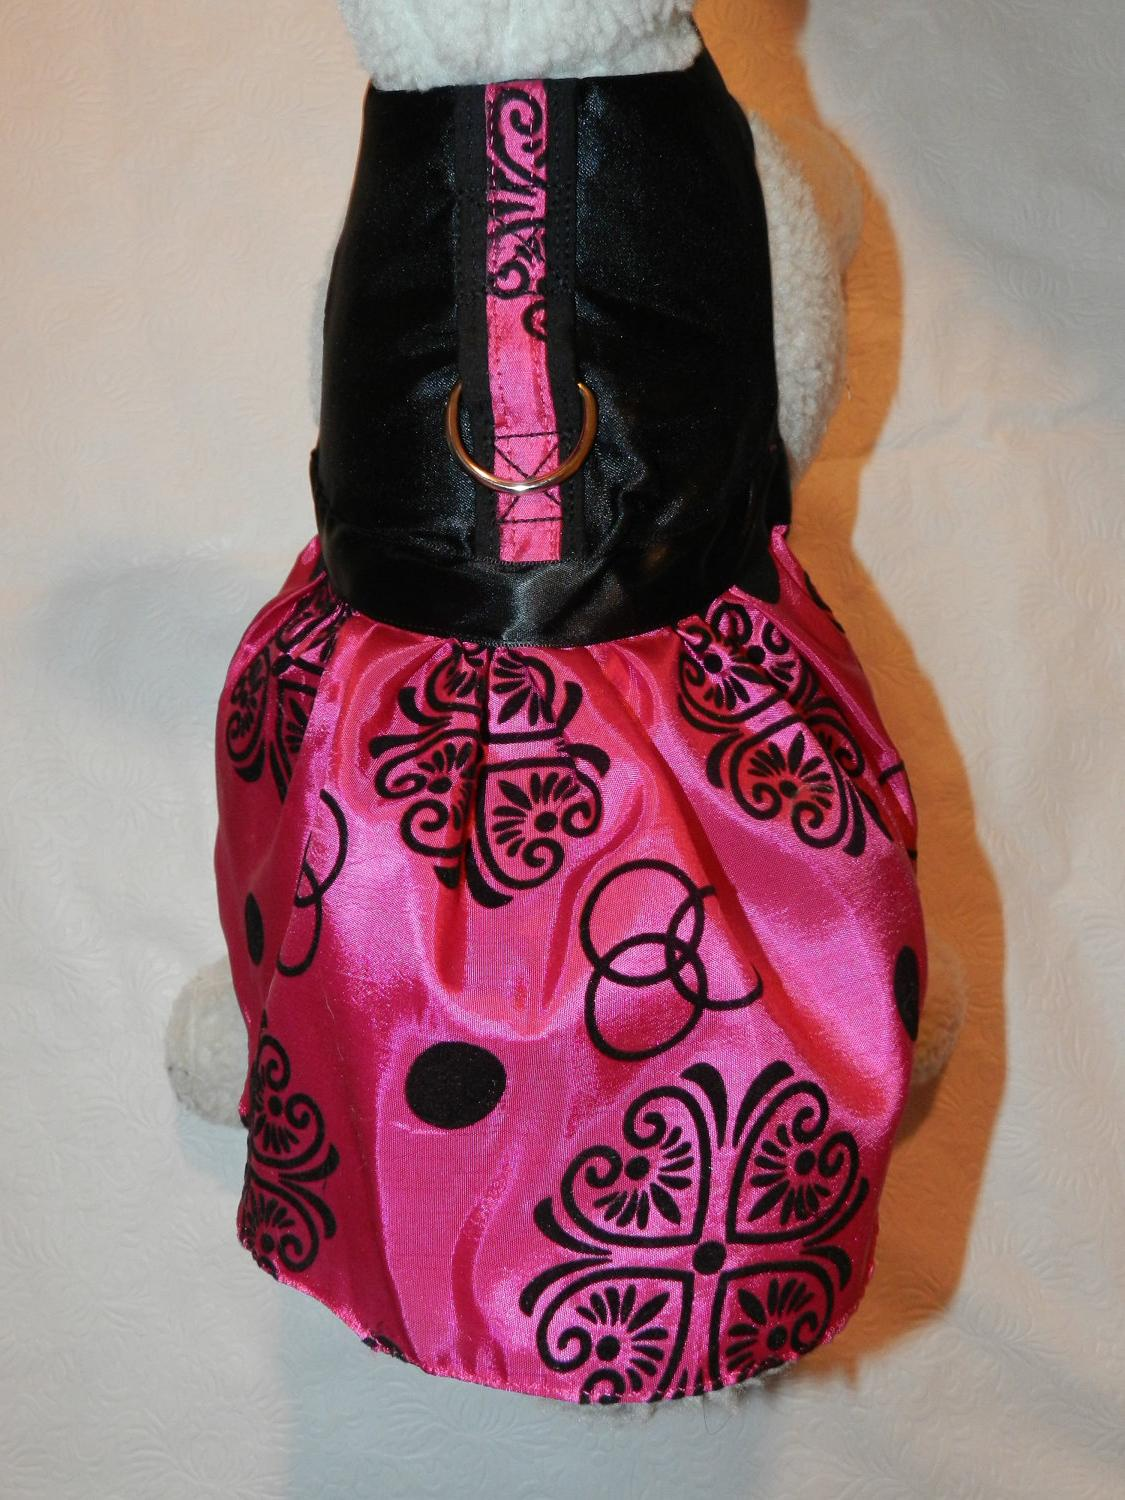 SatinTafetta Black & Fuschia Hearts Harness Dress. Perfect Item for your Cat